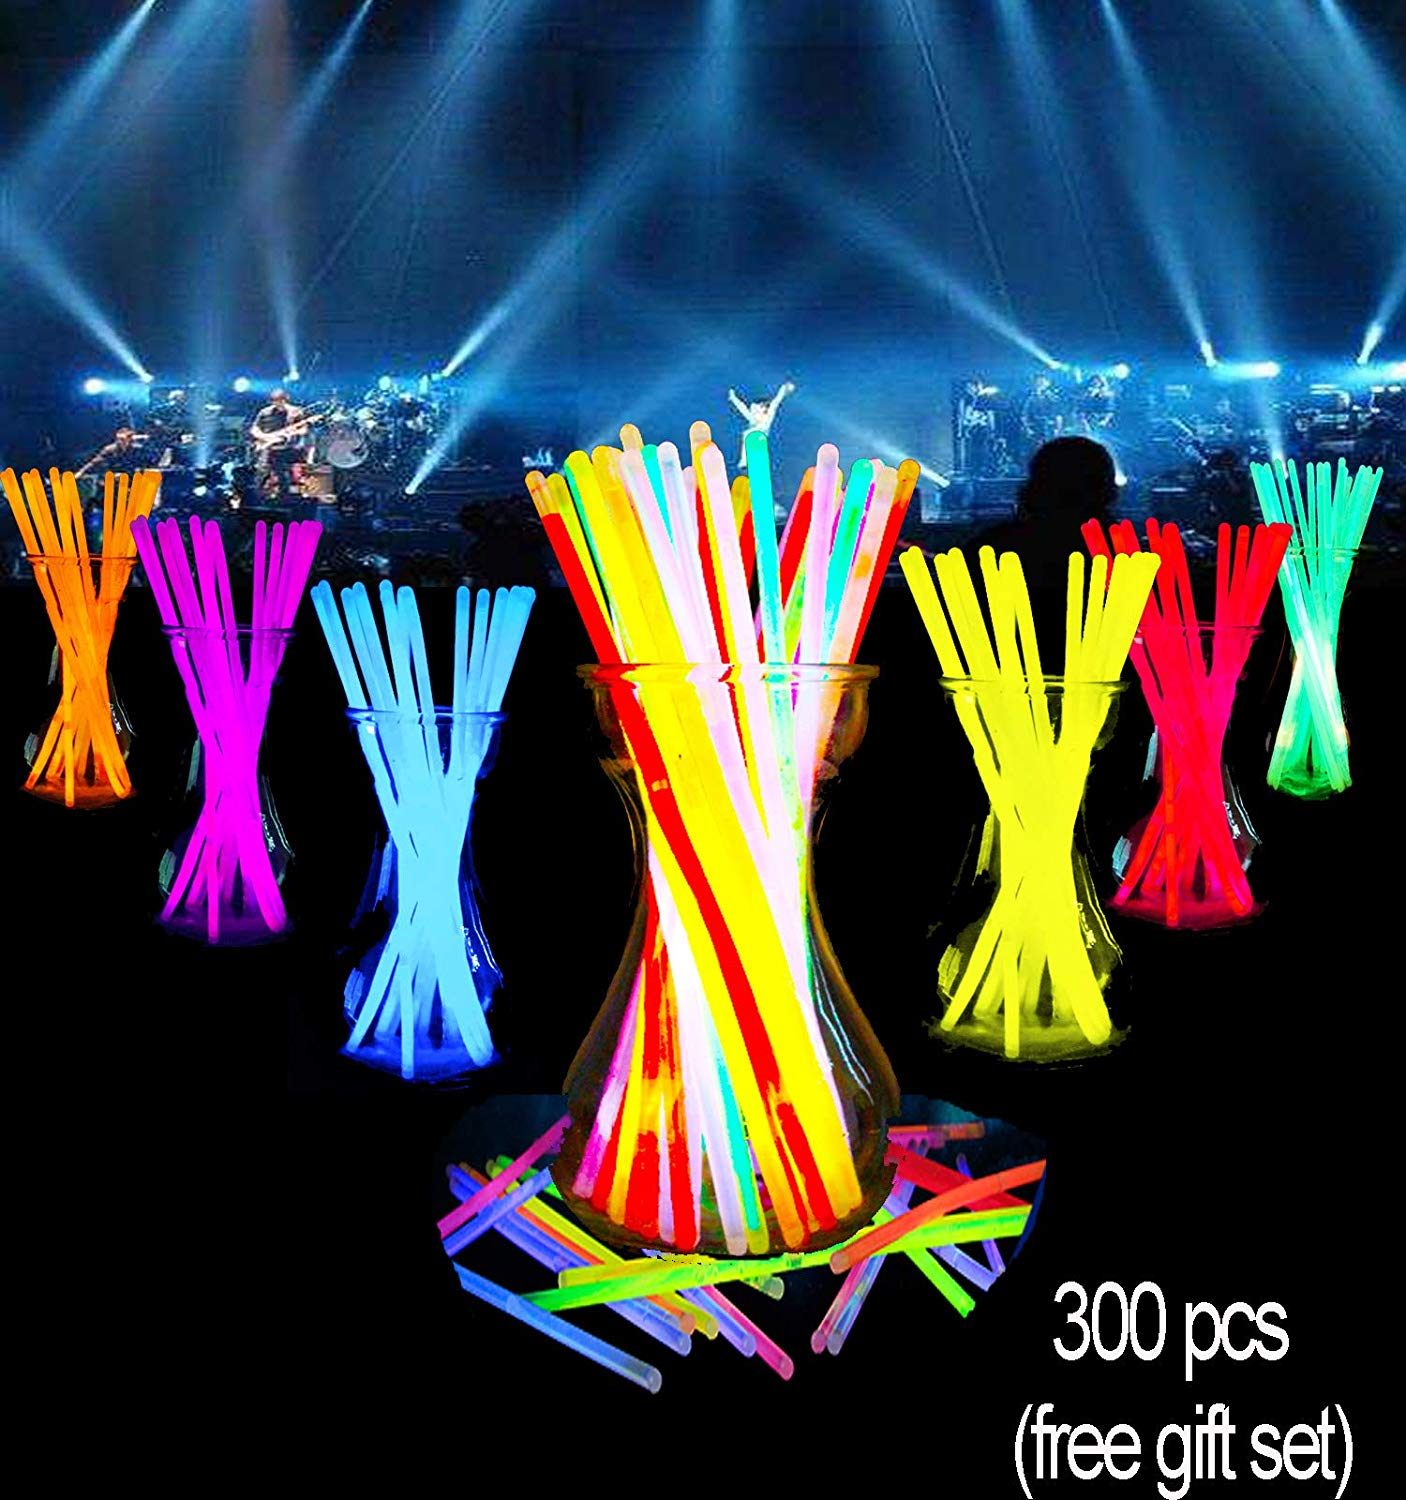 """Glow Sticks Bulk-300 Count-8"""" Glow Necklace Bracelets Party Game Sparklers Supplies Packs Favors In The Dark For Birthday Wedding Halloween For Kids Games Light Up Stick Gifts Bag (300 pcs)"""